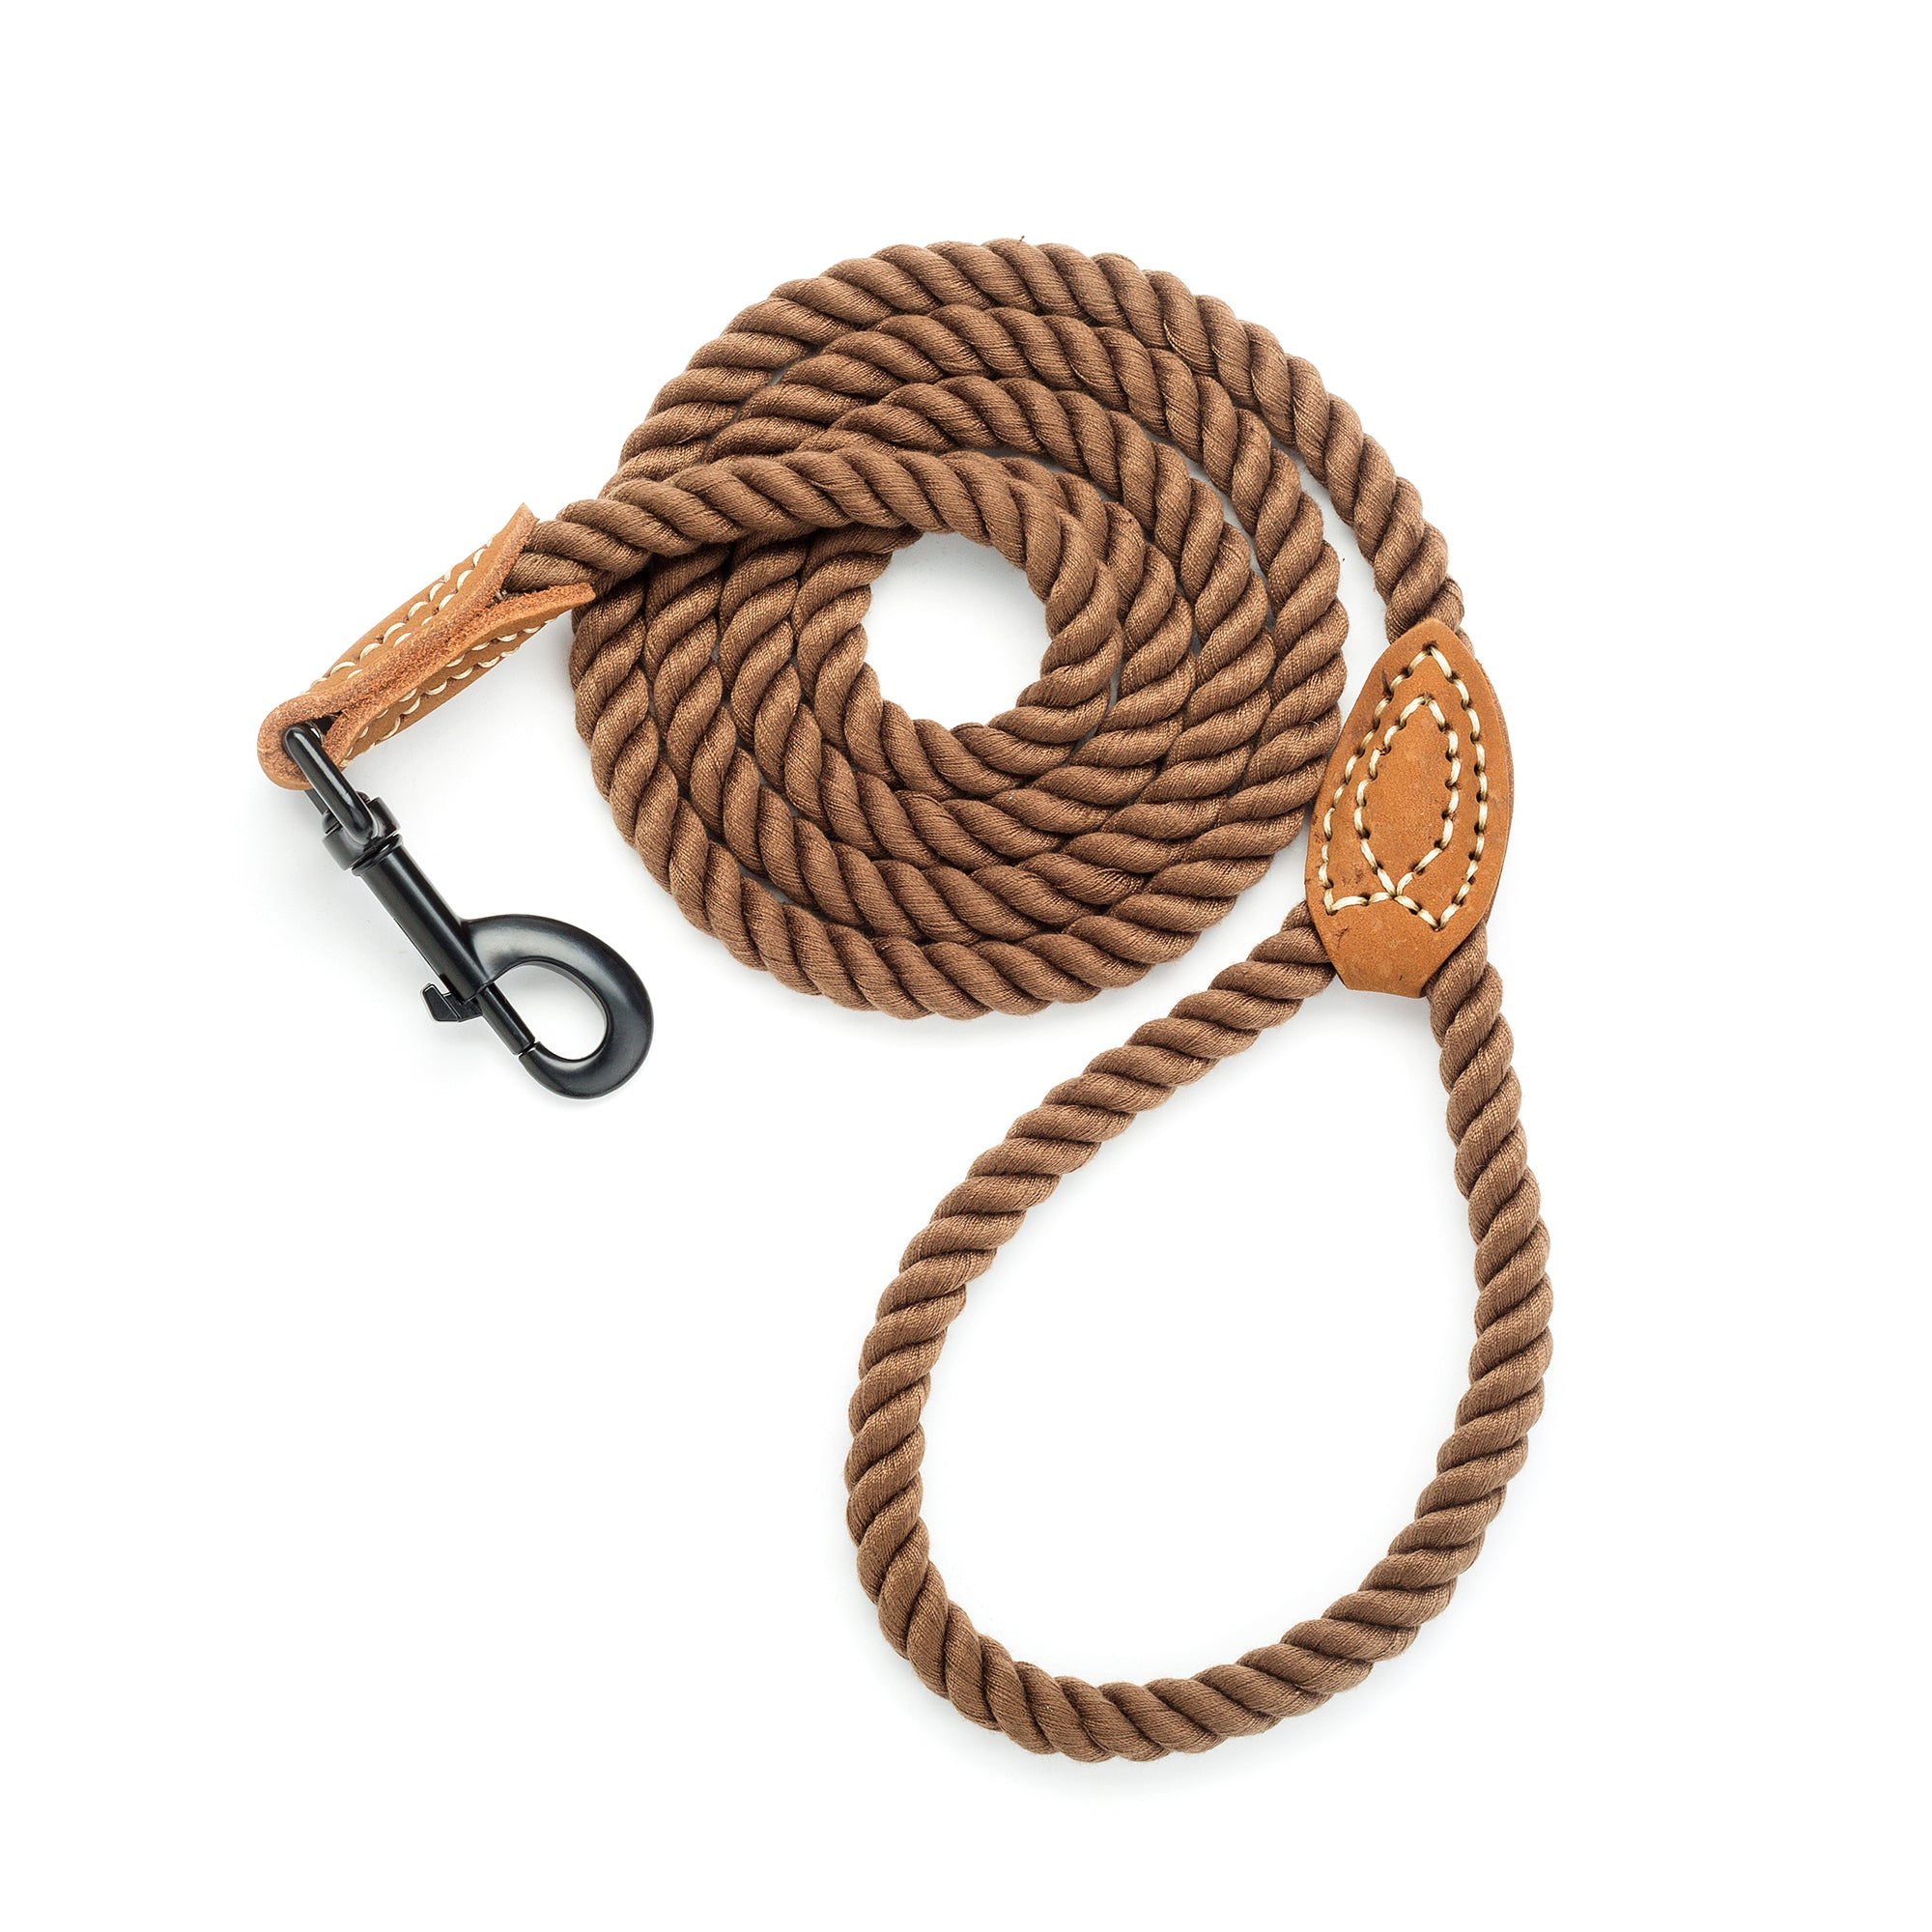 Whole Sale ( Bulk)  Braided Cotton Rope Leash with Leather Tip (Free Shipping Minimum Order Value: $350 )